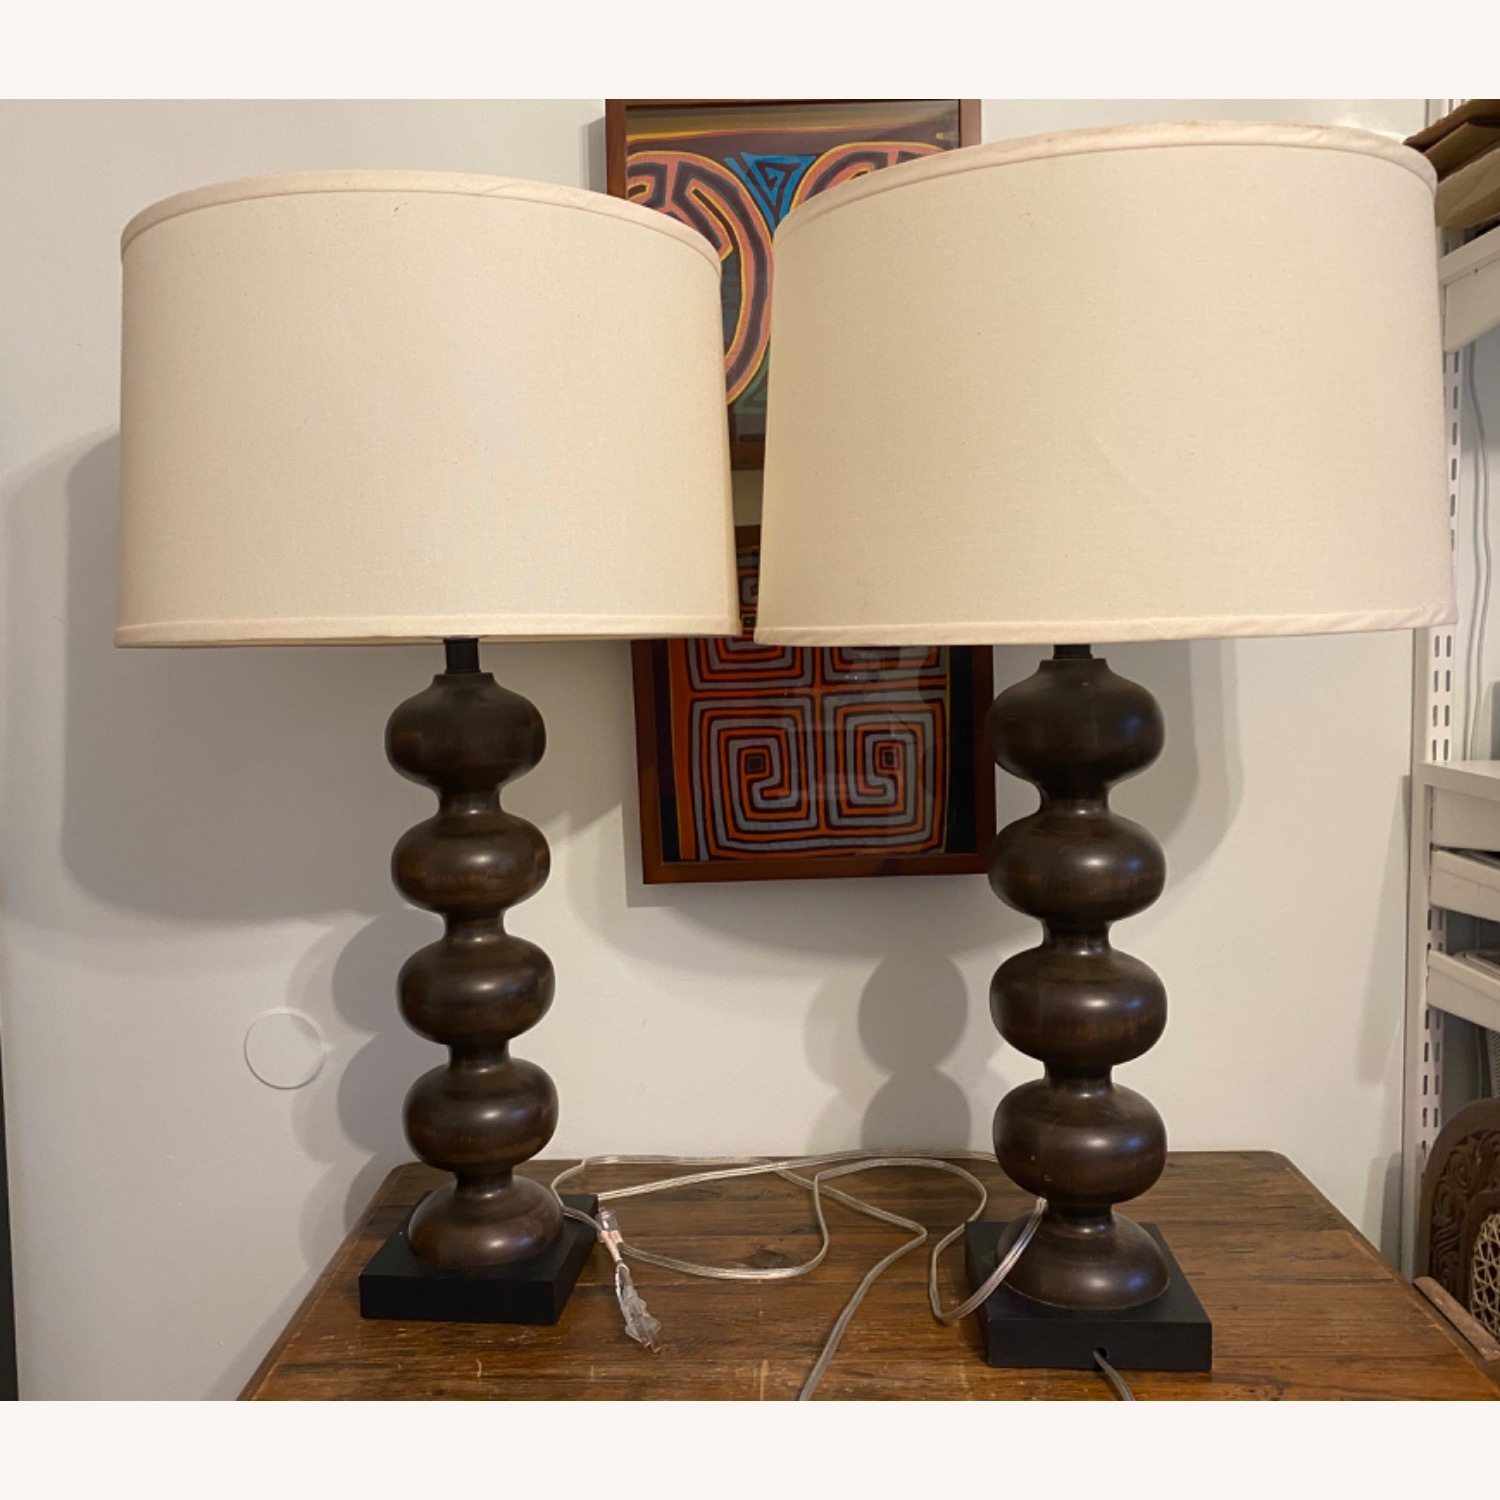 Pottery Barn Hand Turned 31 Tall Wooden Lamps (2) - image-0